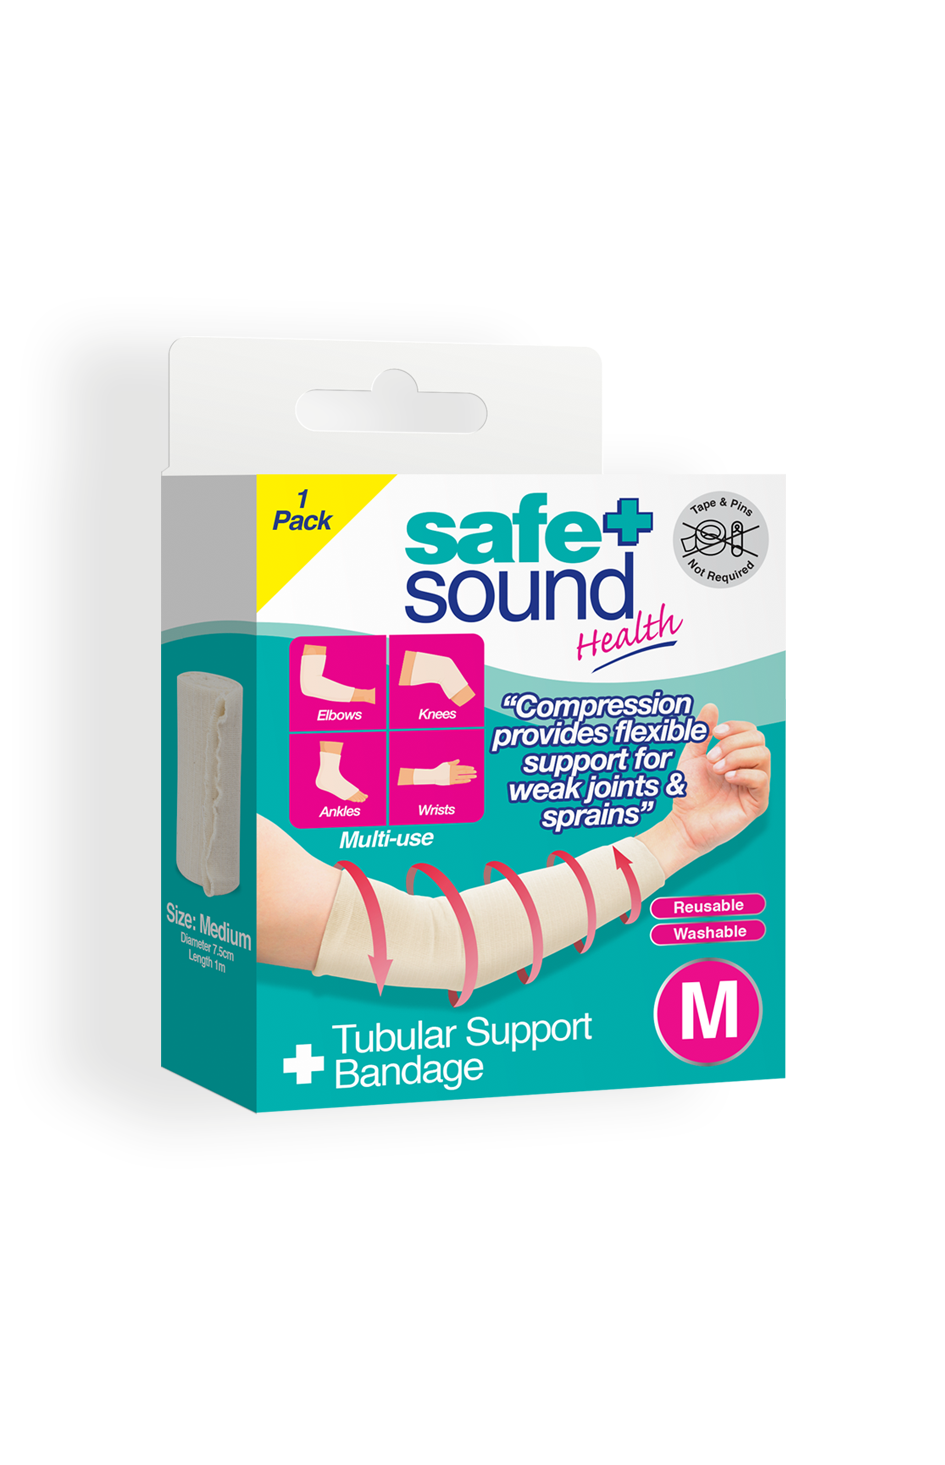 Safe and Sound Health Medium Tubular Support Bandage